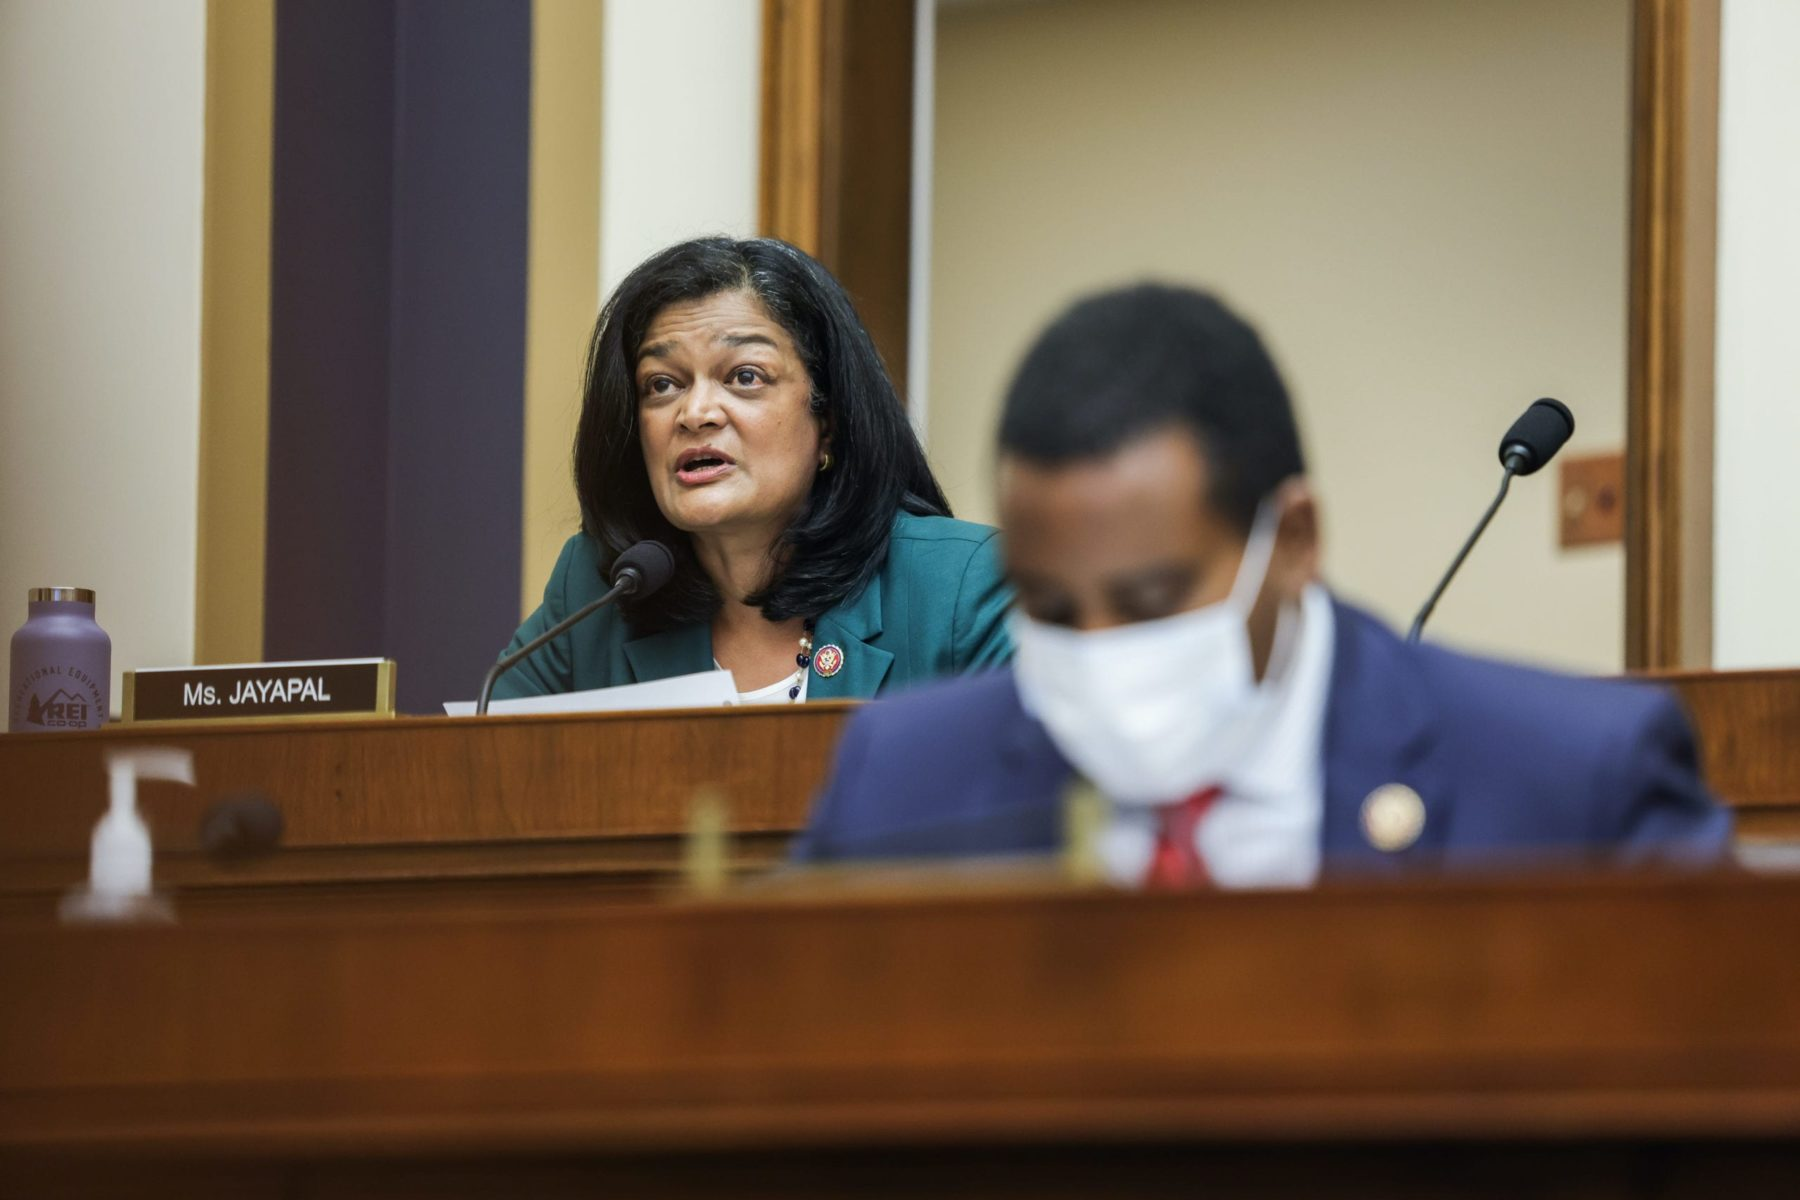 WASHINGTON, DC - JULY 29: Rep. Pramila Jayapal (D-WA) speaks during the House Judiciary Subcommittee on Antitrust, Commercial and Administrative Law hearing on Online Platforms and Market Power in the Rayburn House office Building, July 29, 2020 on Capitol Hill in Washington, DC. The committee was scheduled to hear testimony from the CEOs of Apple, Facebook, Amazon and Google. (Photo by Graeme Jennings-Pool/Getty Images)